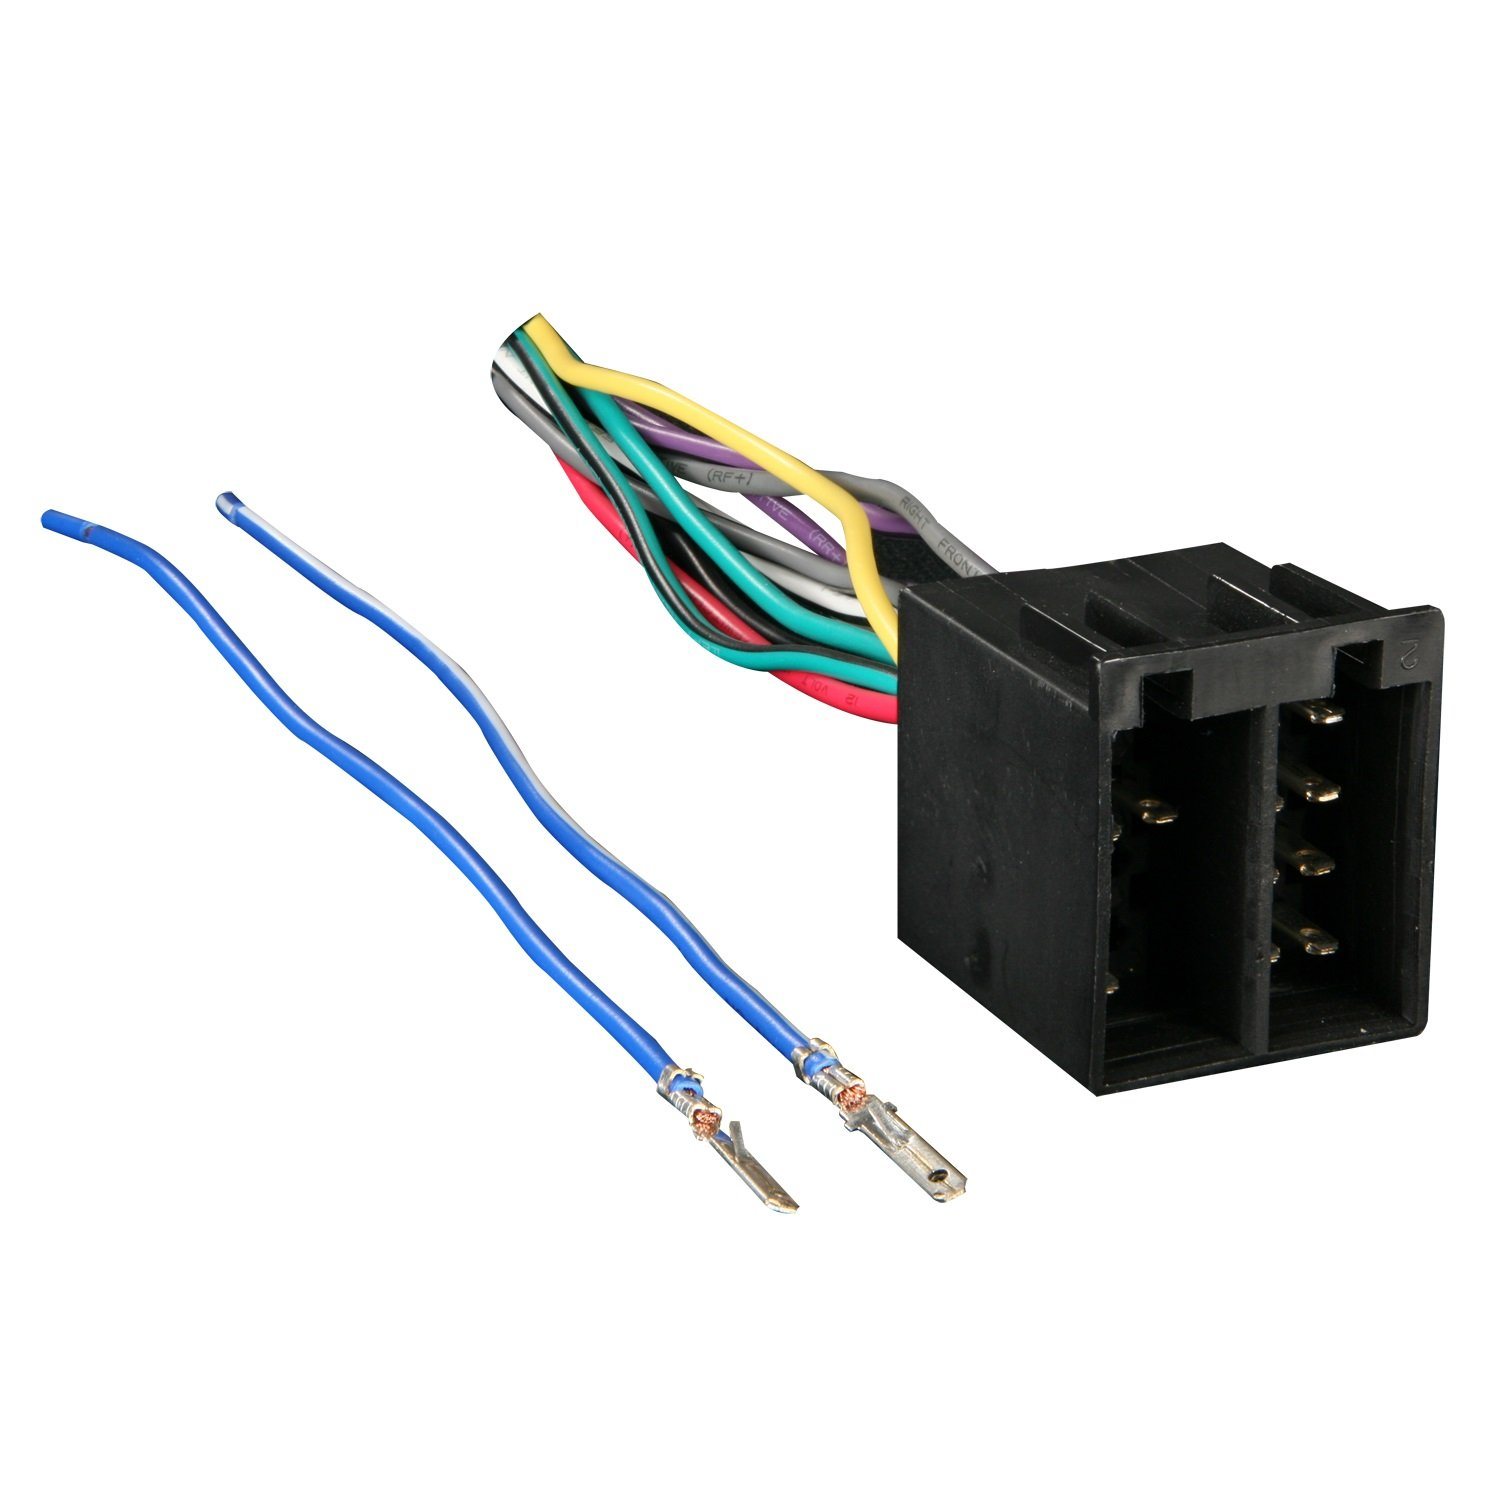 61btua5kg4L._SL1500_ amazon com metra 70 1783 radio wiring harness for smart car car  at bakdesigns.co